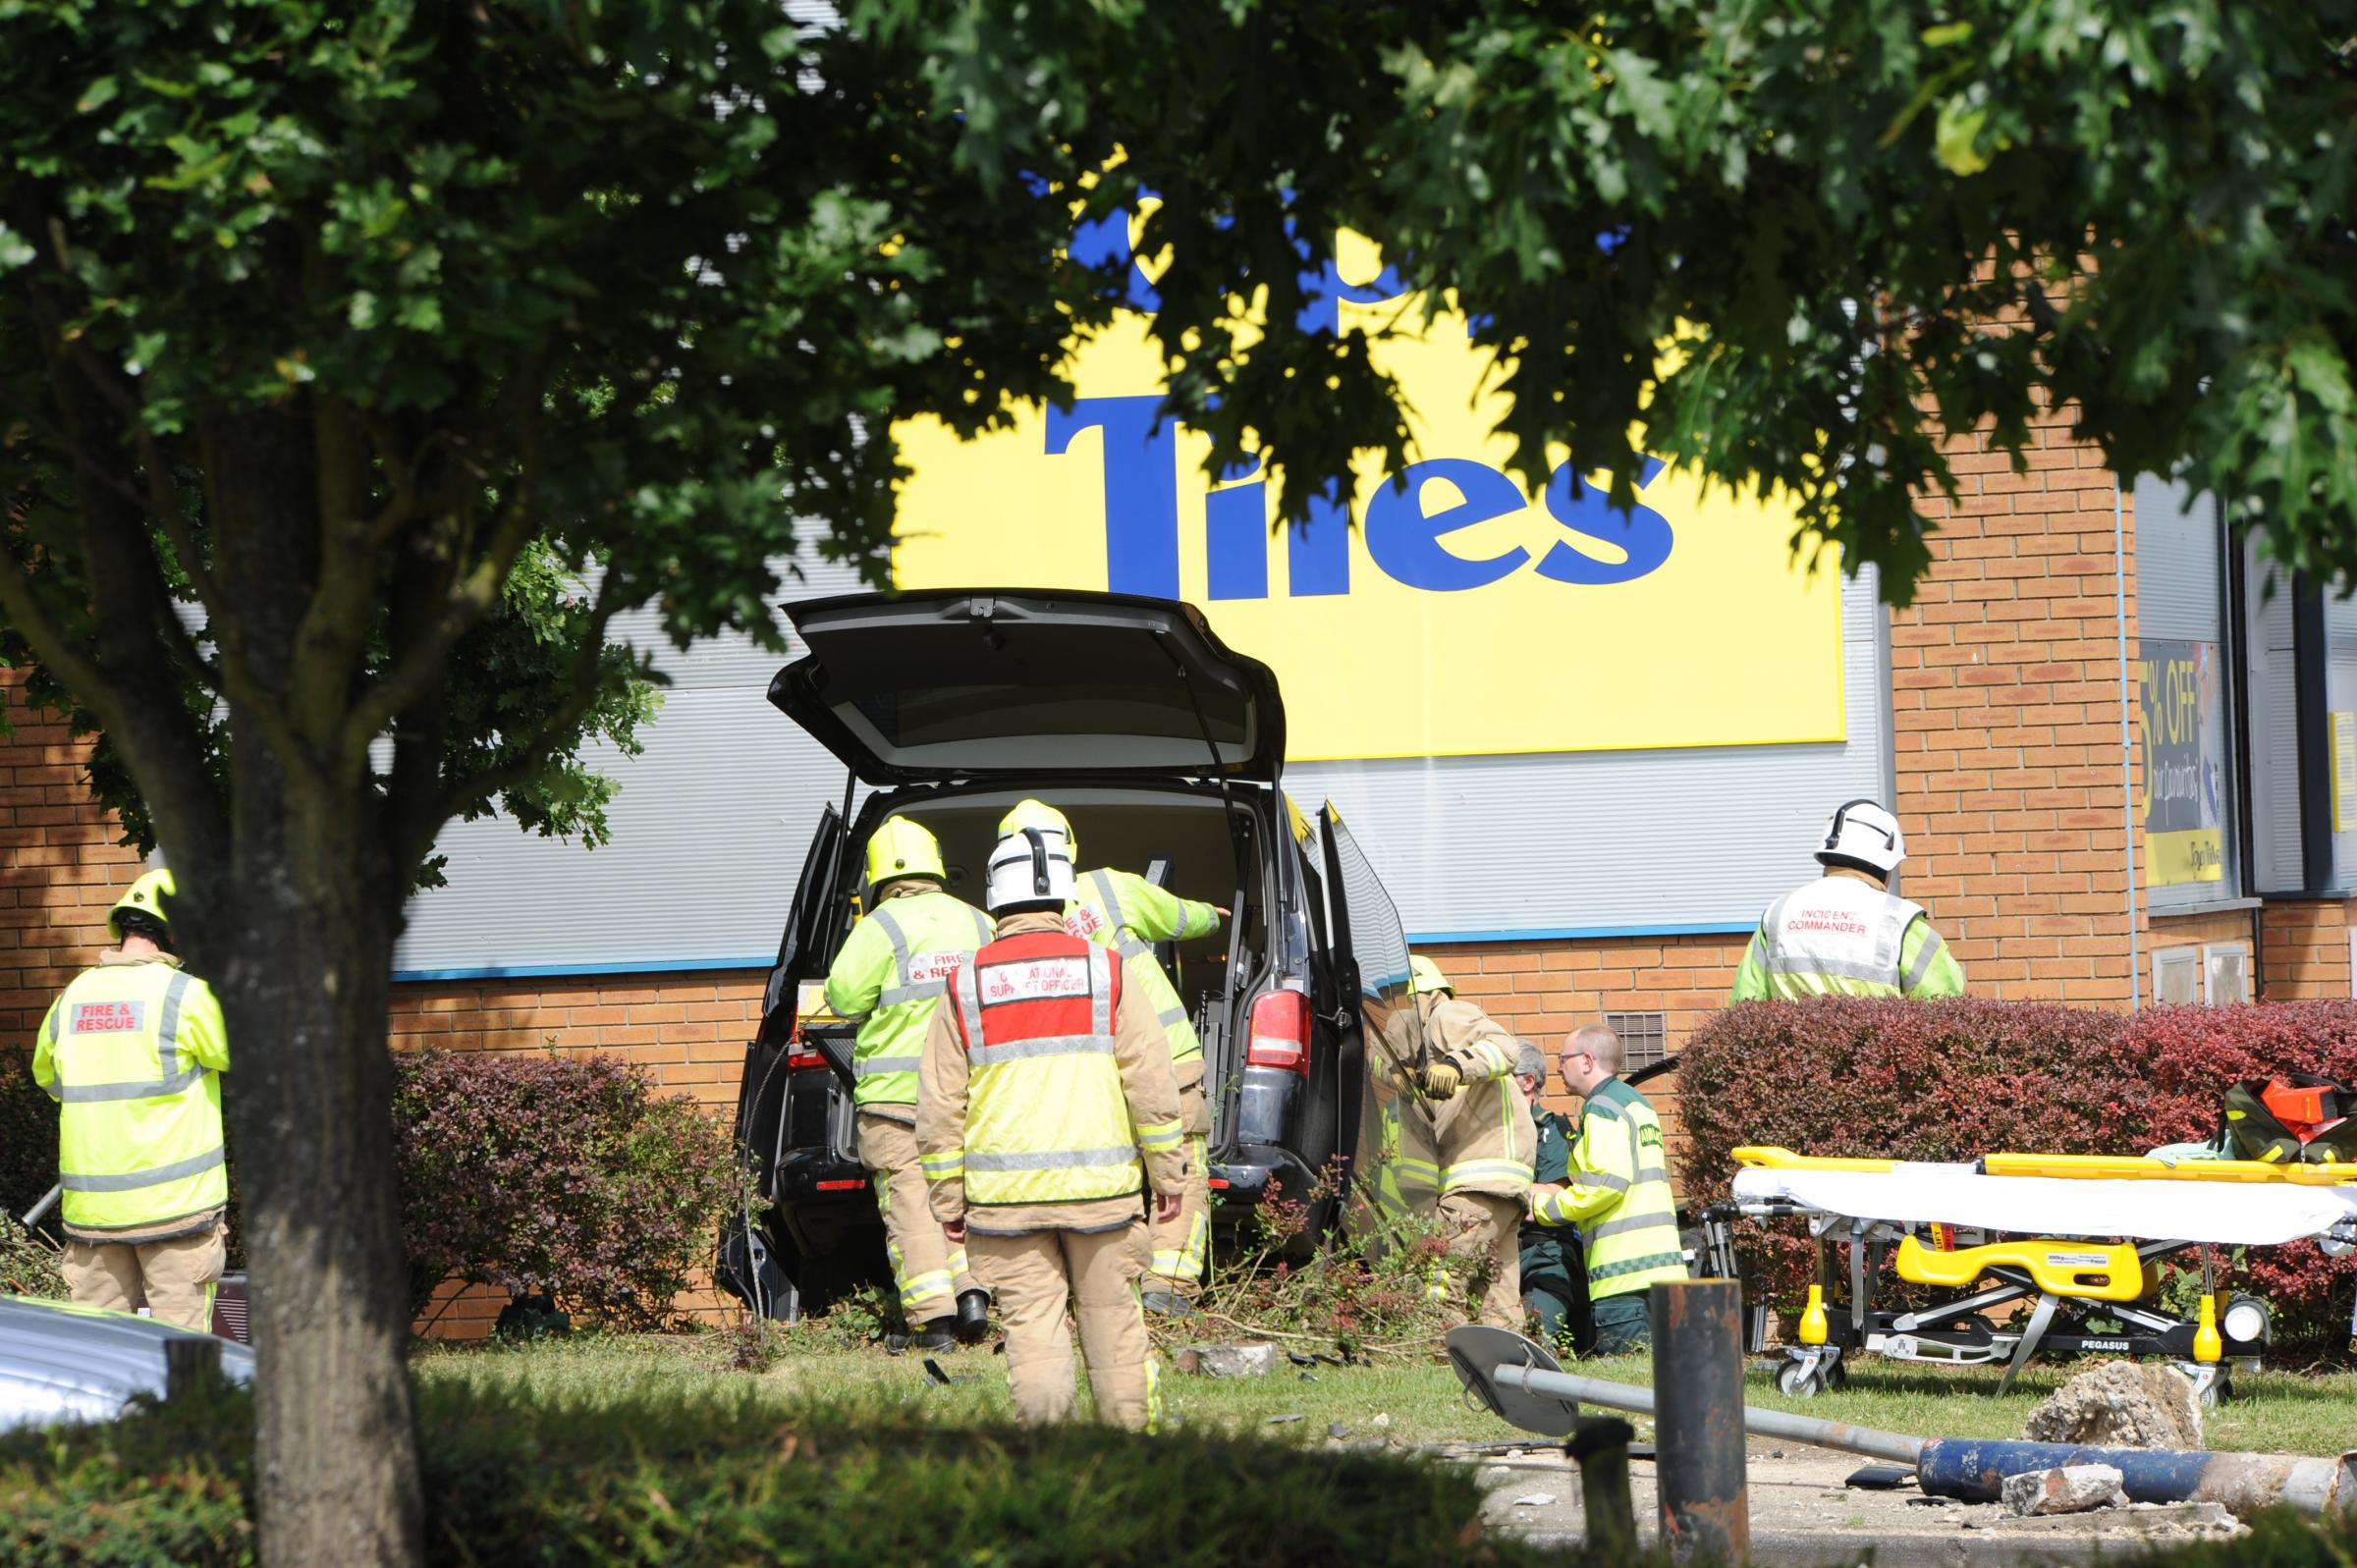 One man injured after car hits wall in Basildon